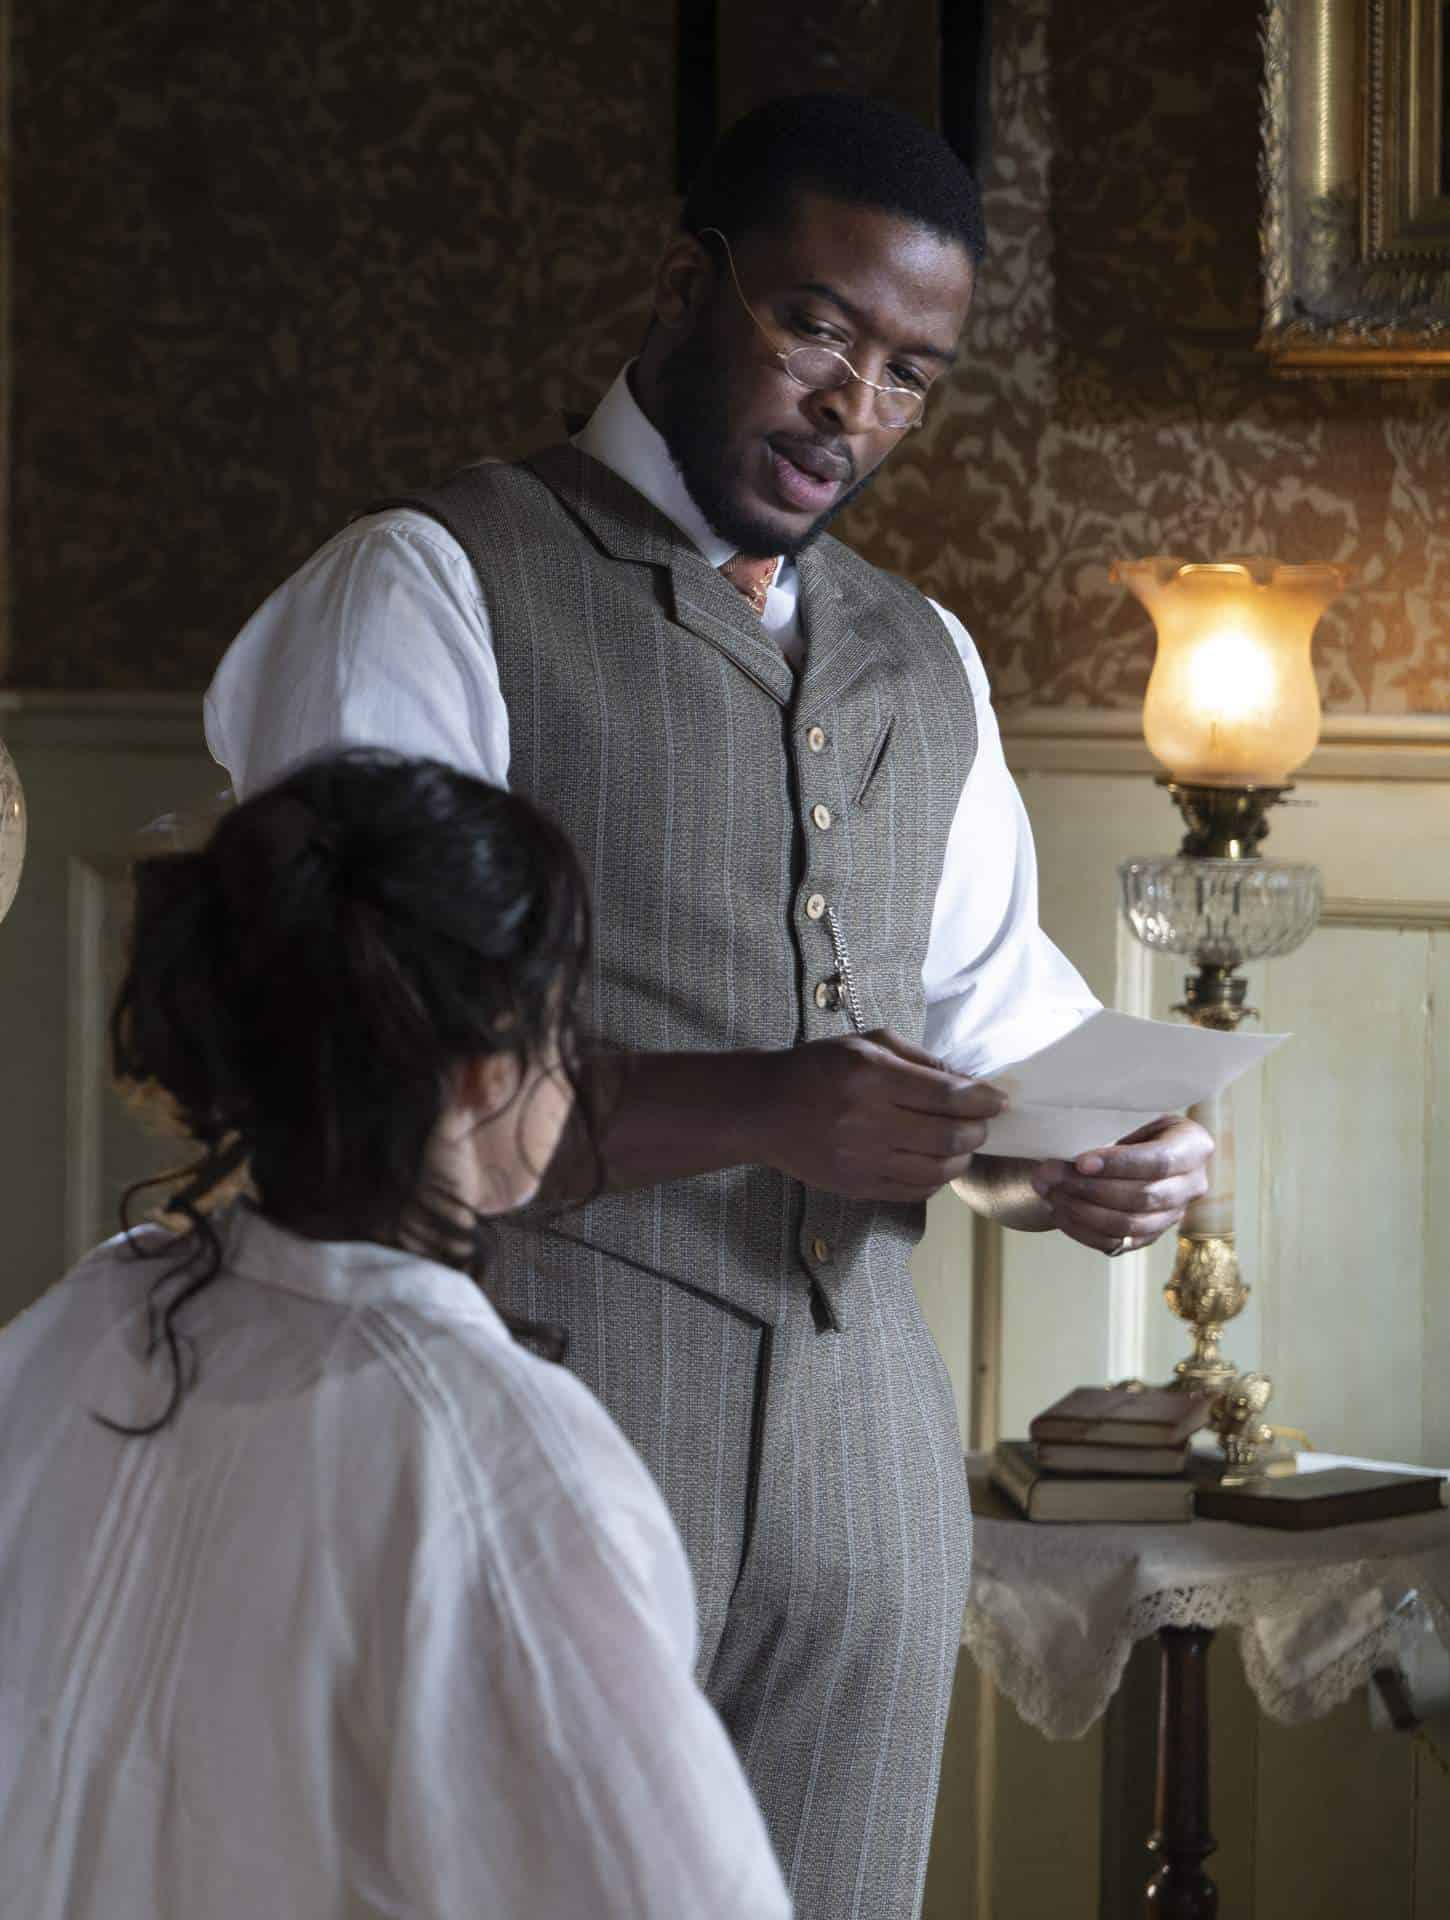 Dr. Horatio Cousens (Zackary Momoh) with a patient